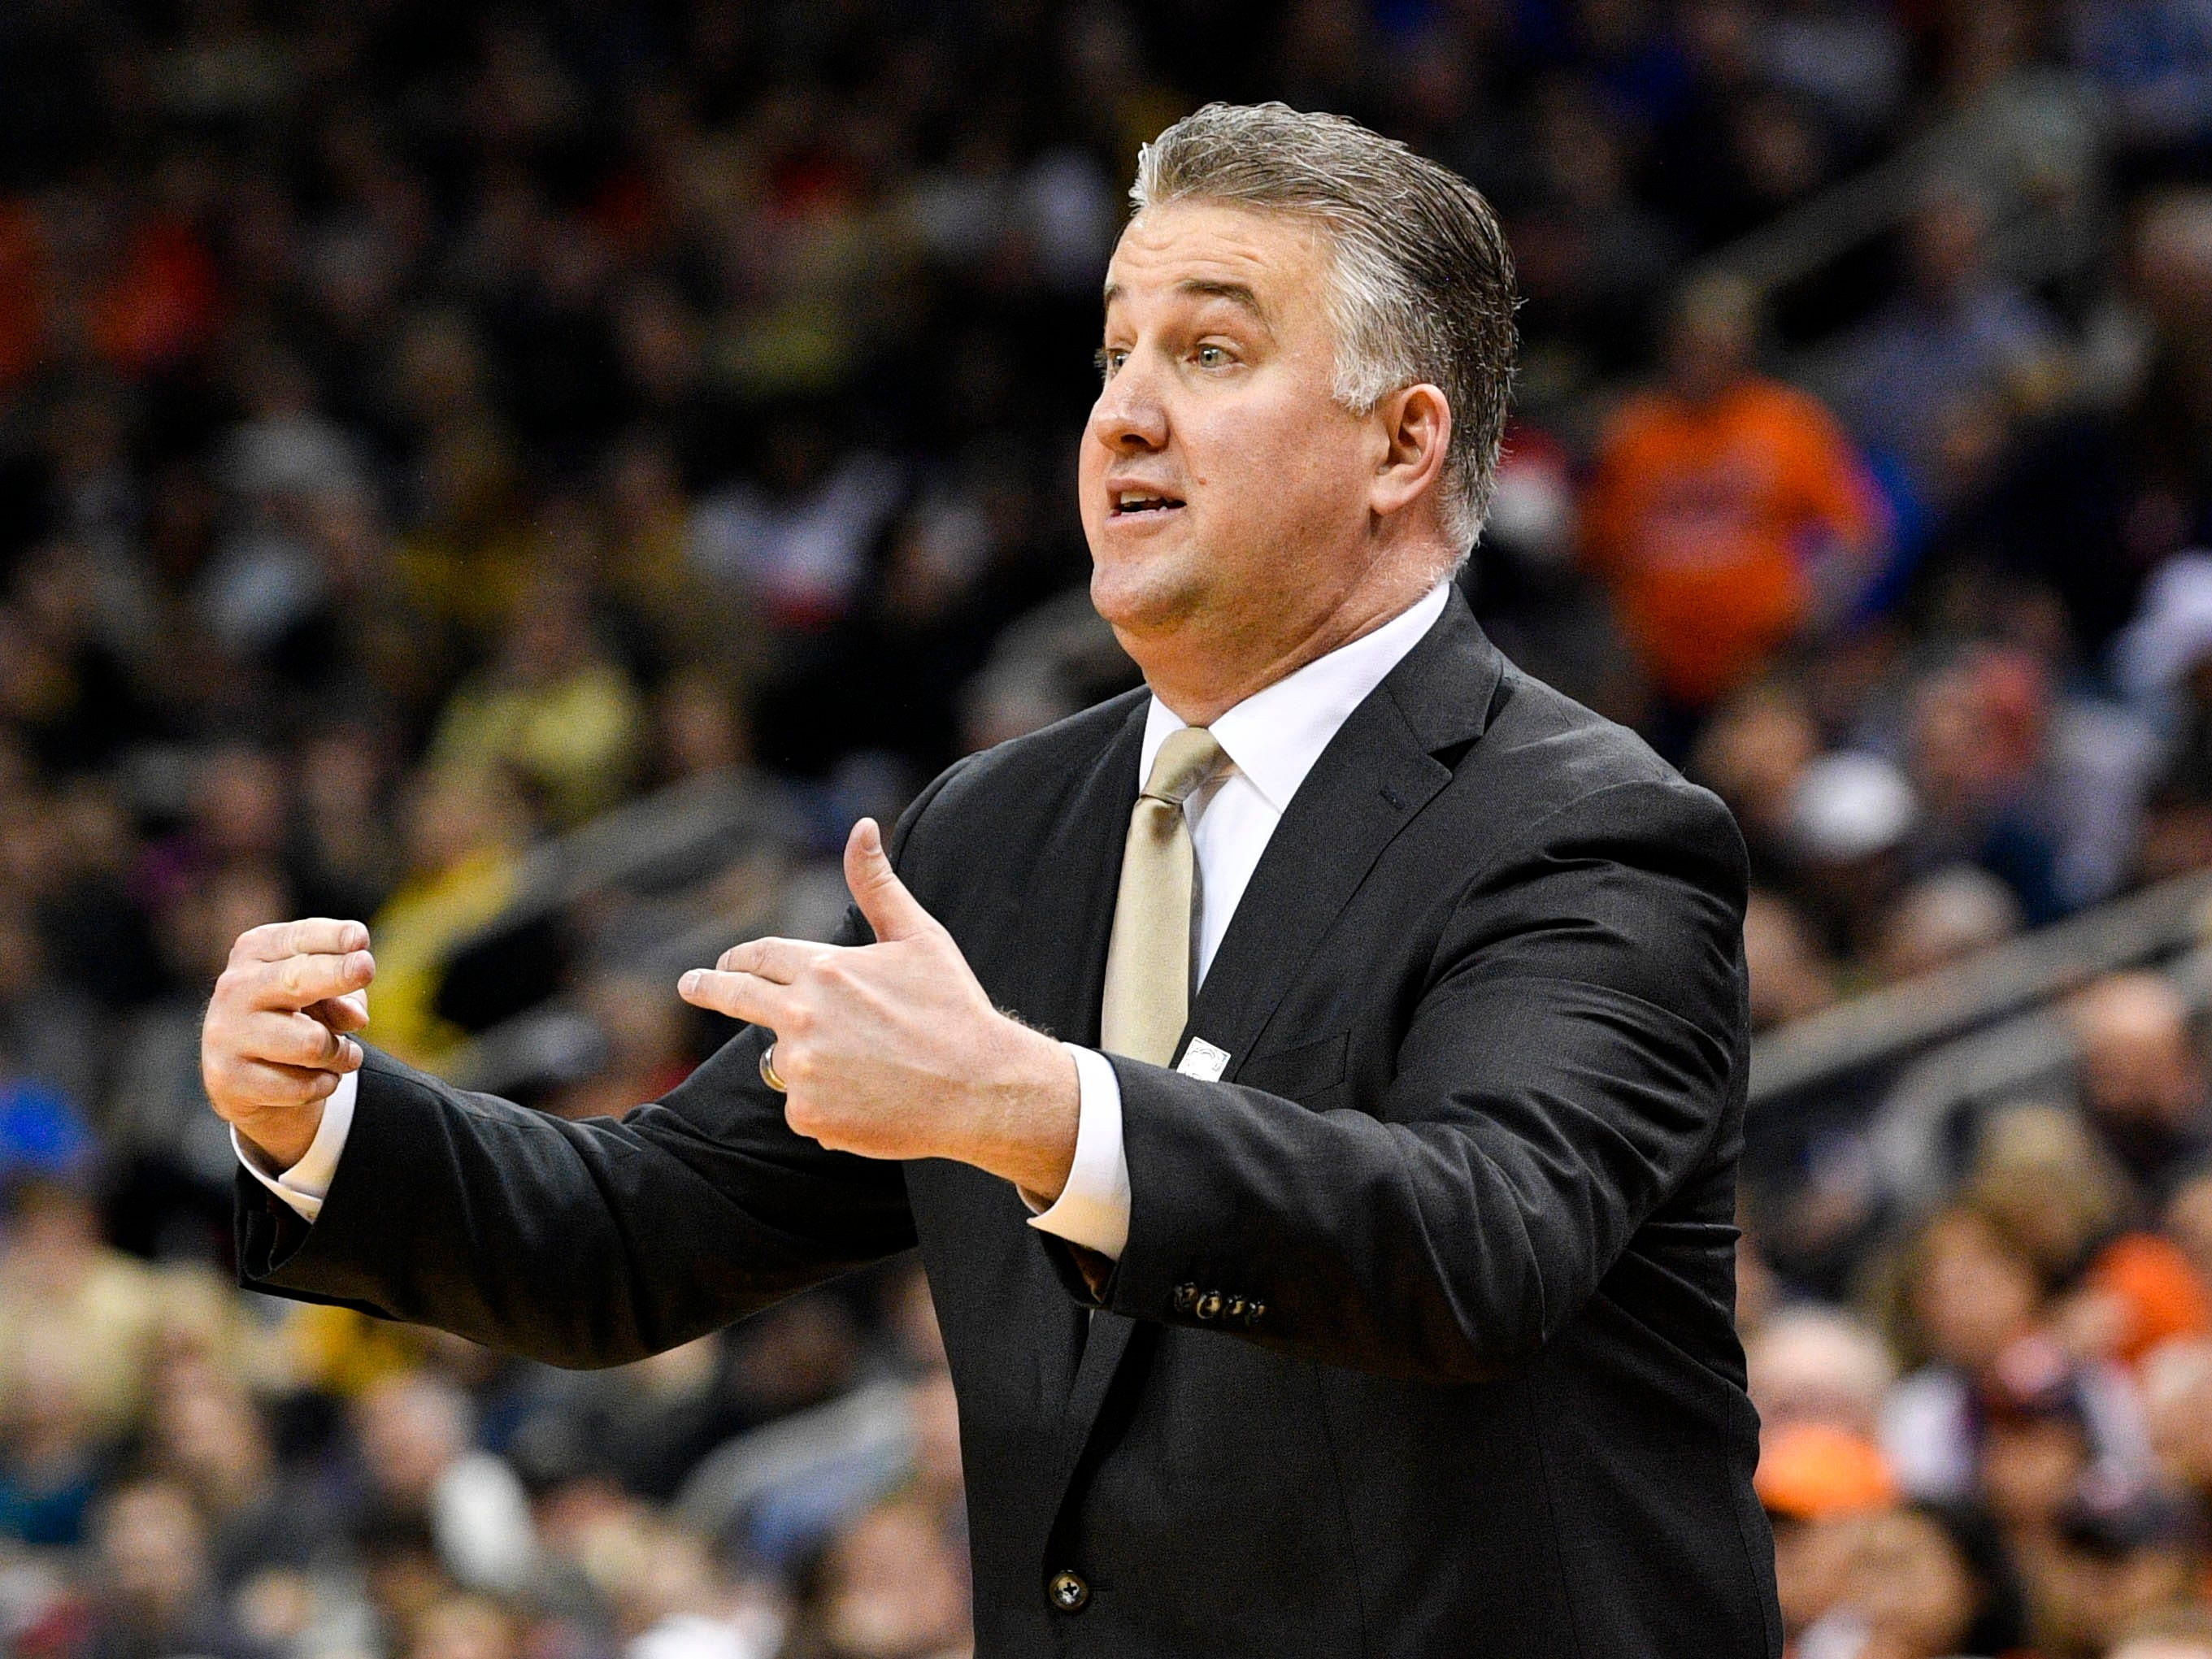 Mar 30, 2019; Louisville, KY, United States; Purdue Boilermakers head coach Matt Painter reacts during the first half in the championship game against the Virginia Cavaliers of the south regional of the 2019 NCAA Tournament at KFC Yum Center. Mandatory Credit: Jamie Rhodes-USA TODAY Sports